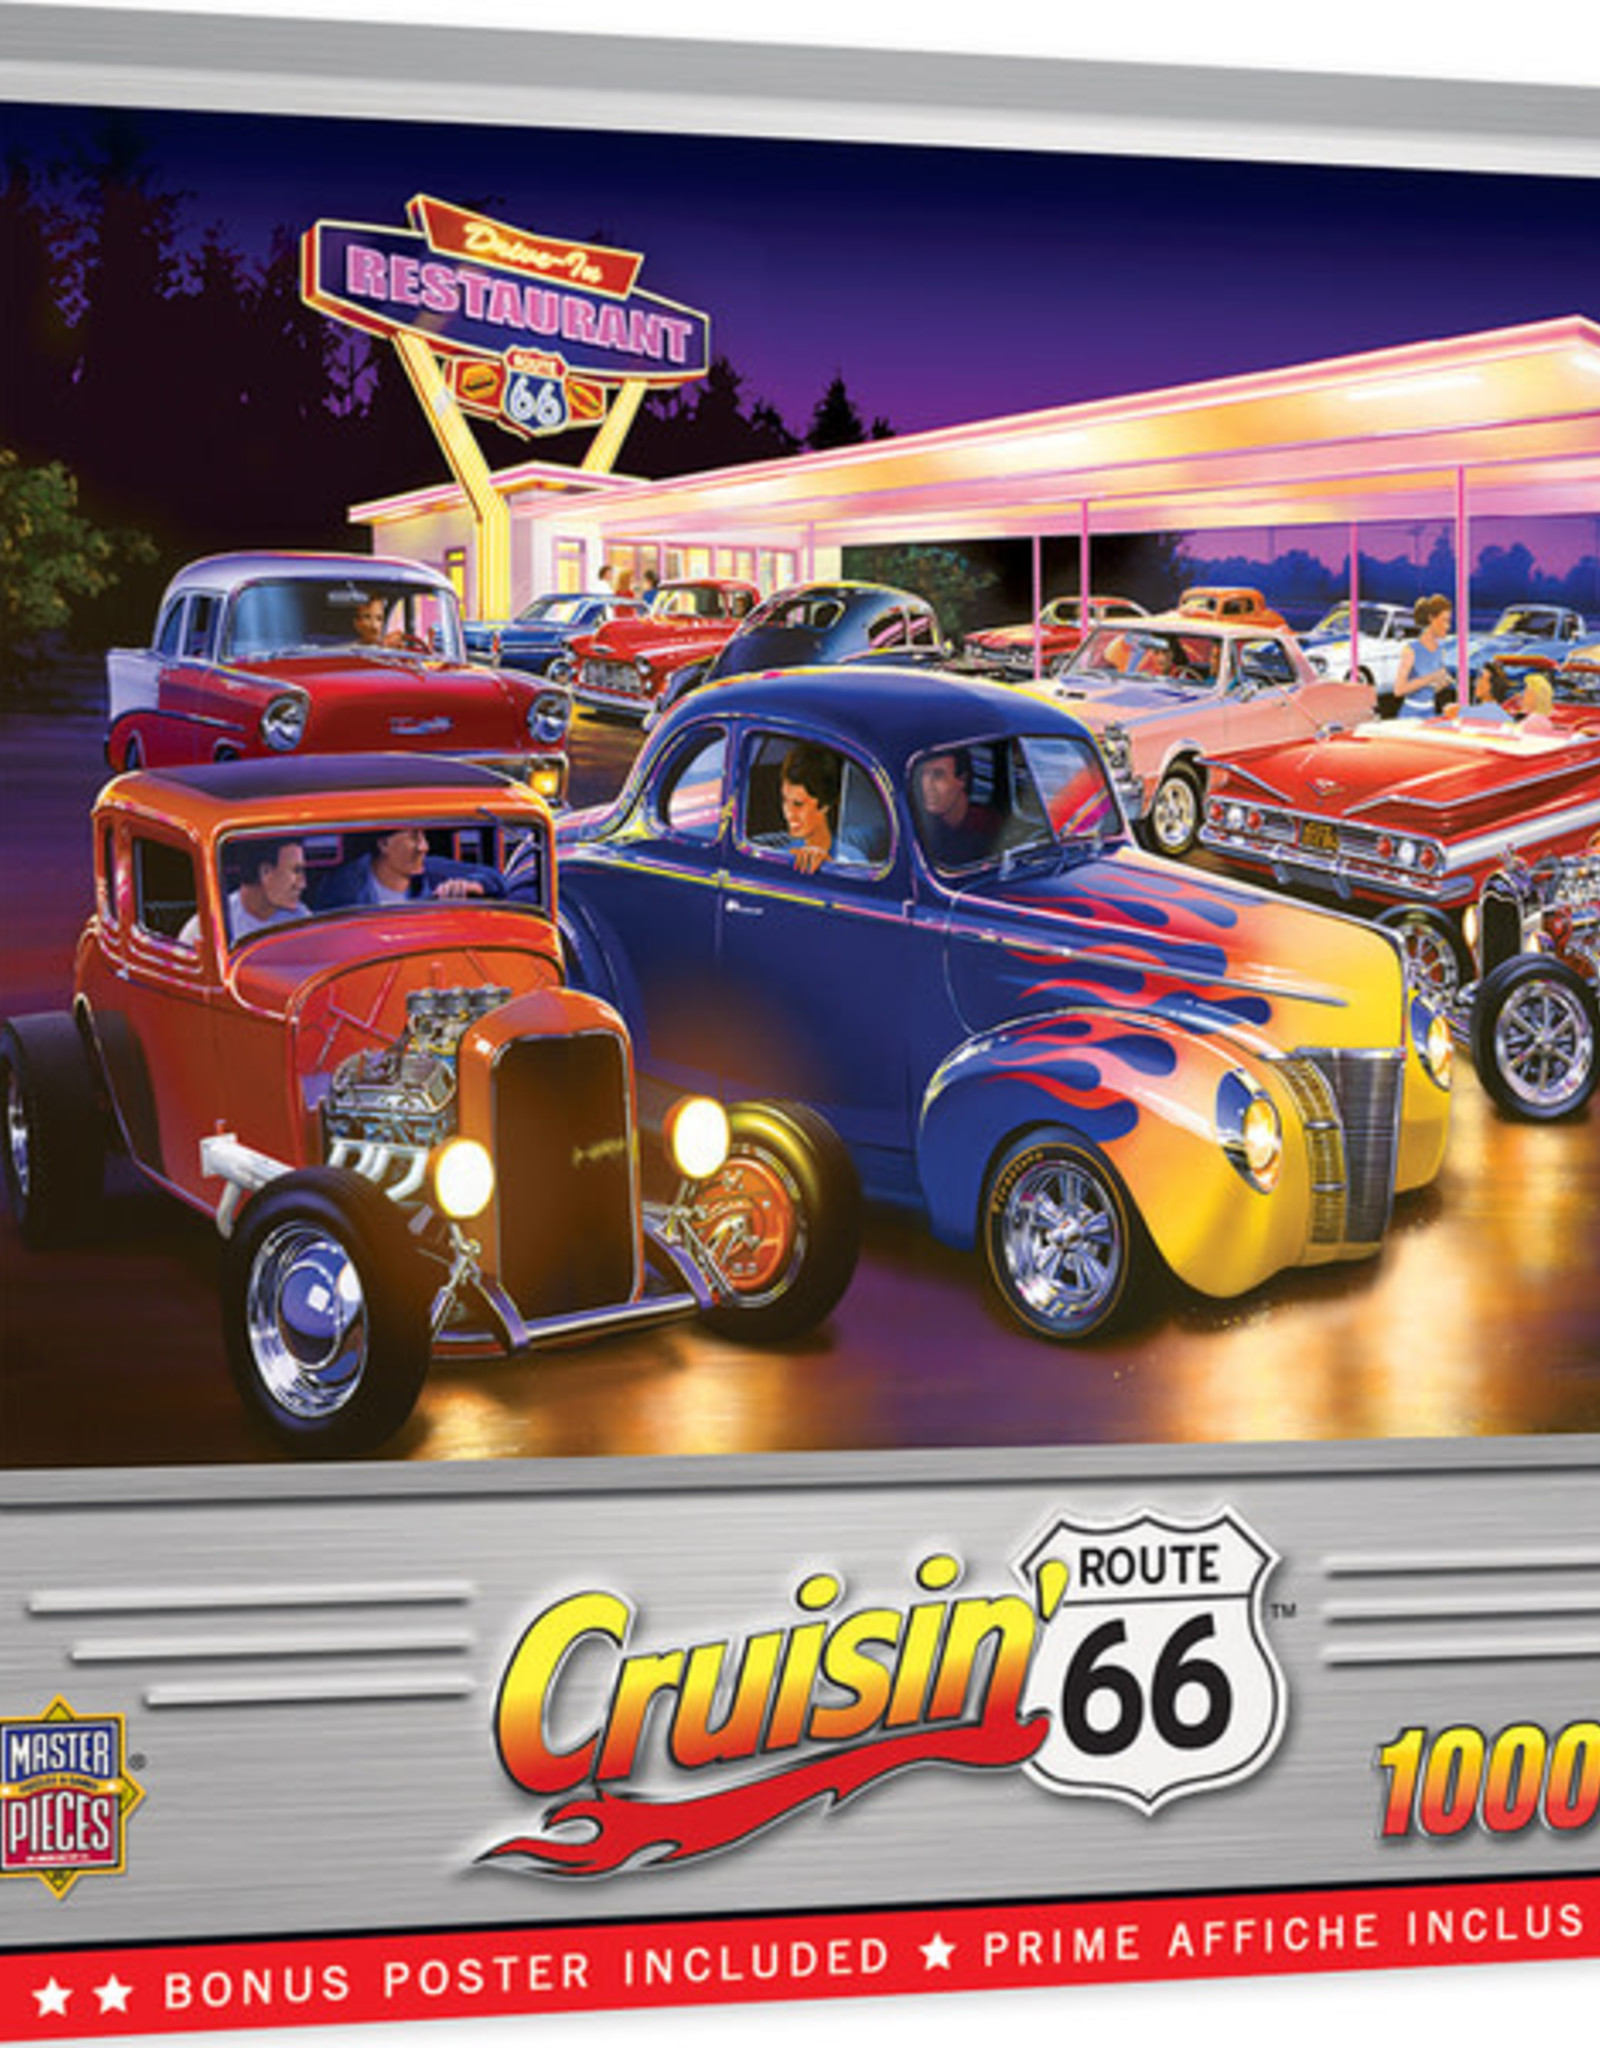 Master Pieces 1000pc Cruisin' Rt66 - Friday Night Hot Rods Puzzle